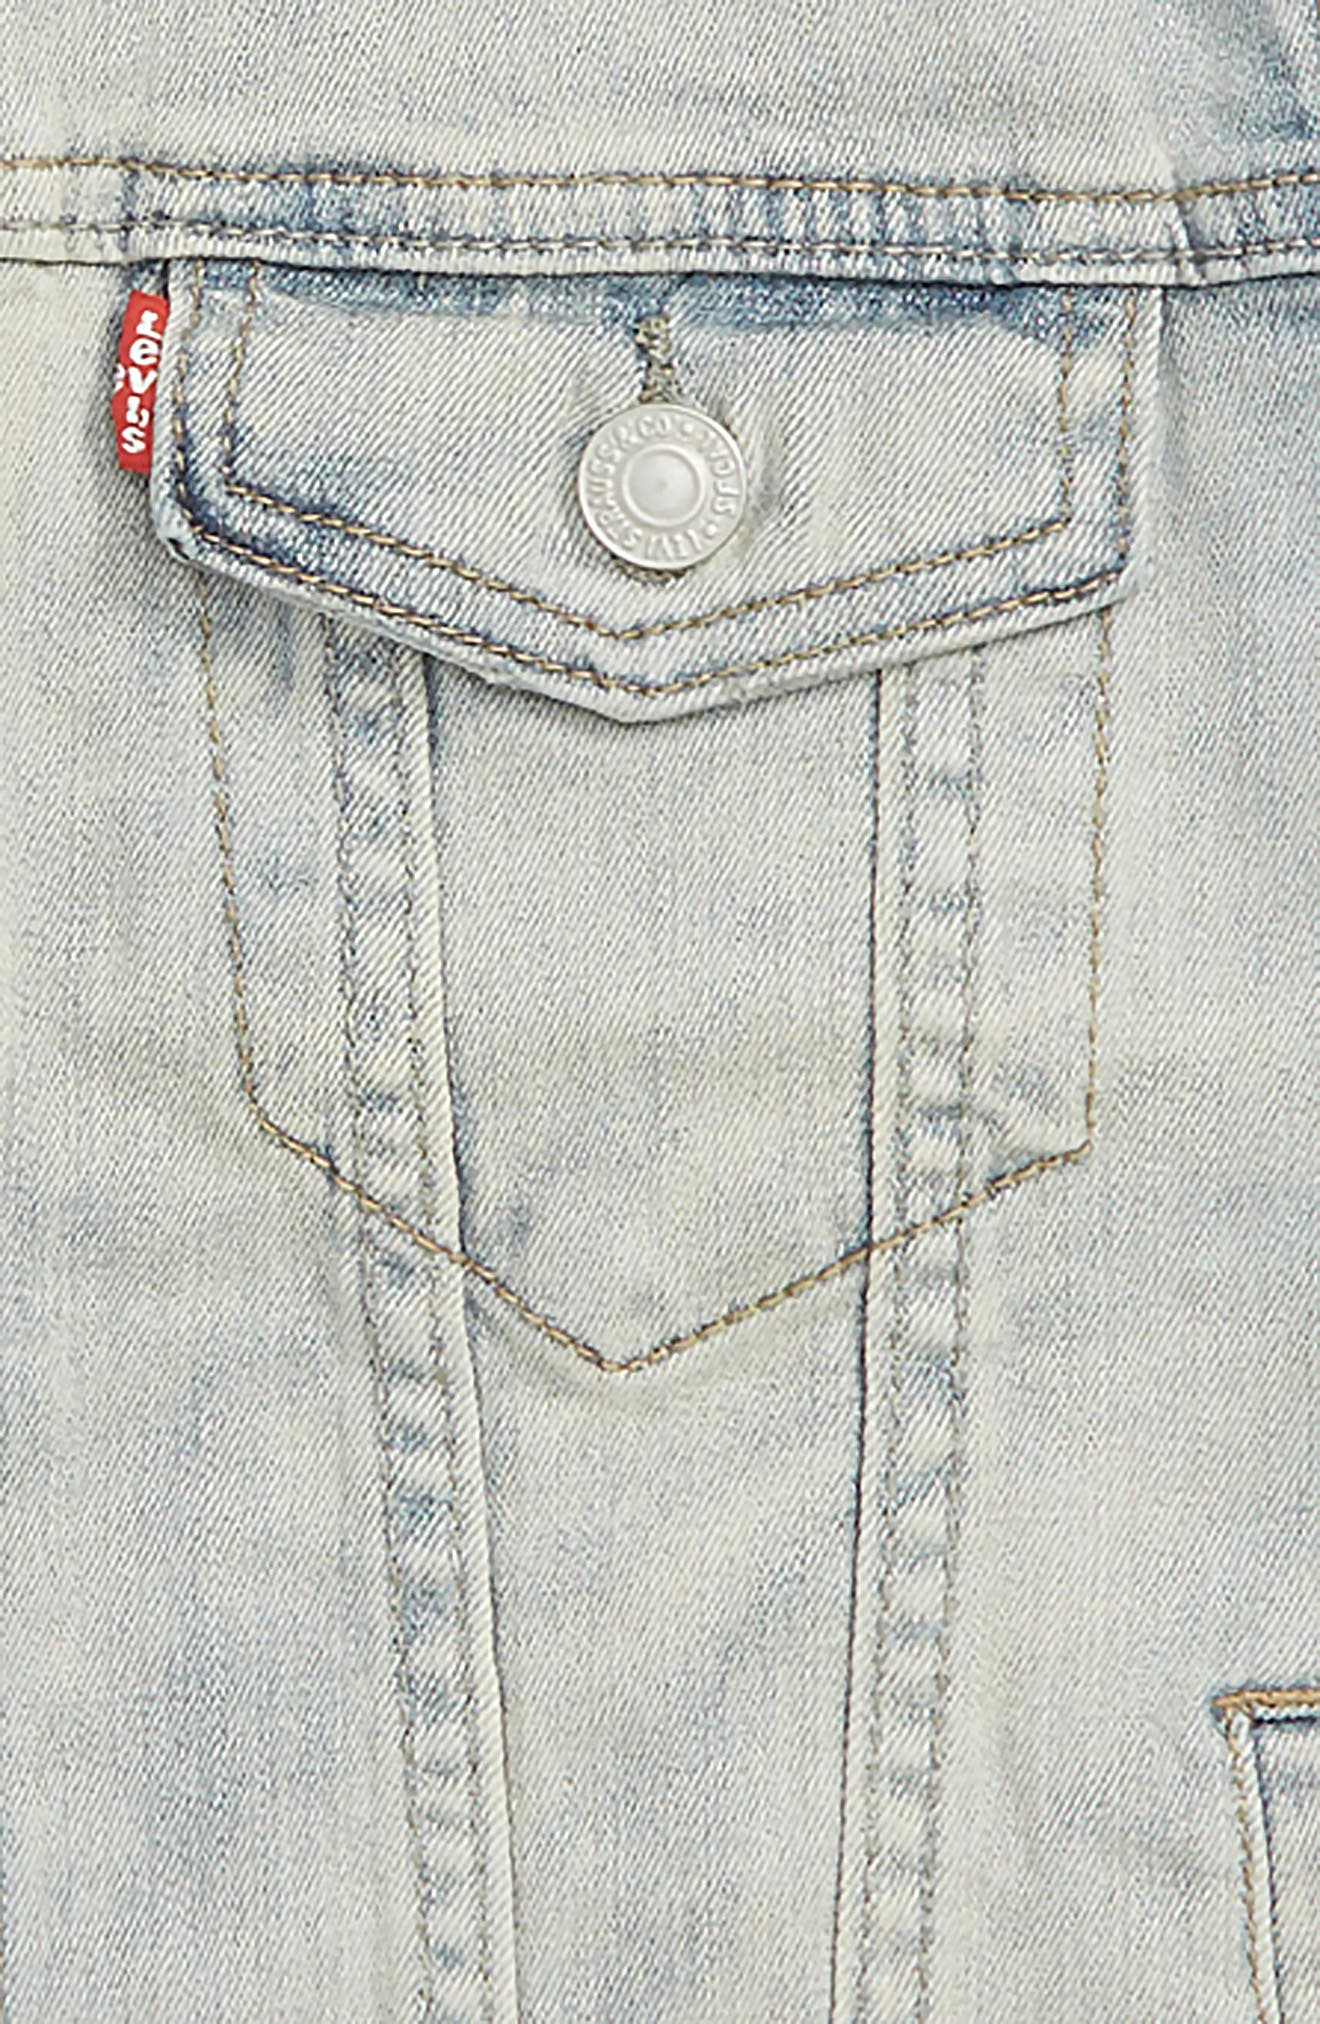 Trucker Denim Jacket,                             Alternate thumbnail 2, color,                             407